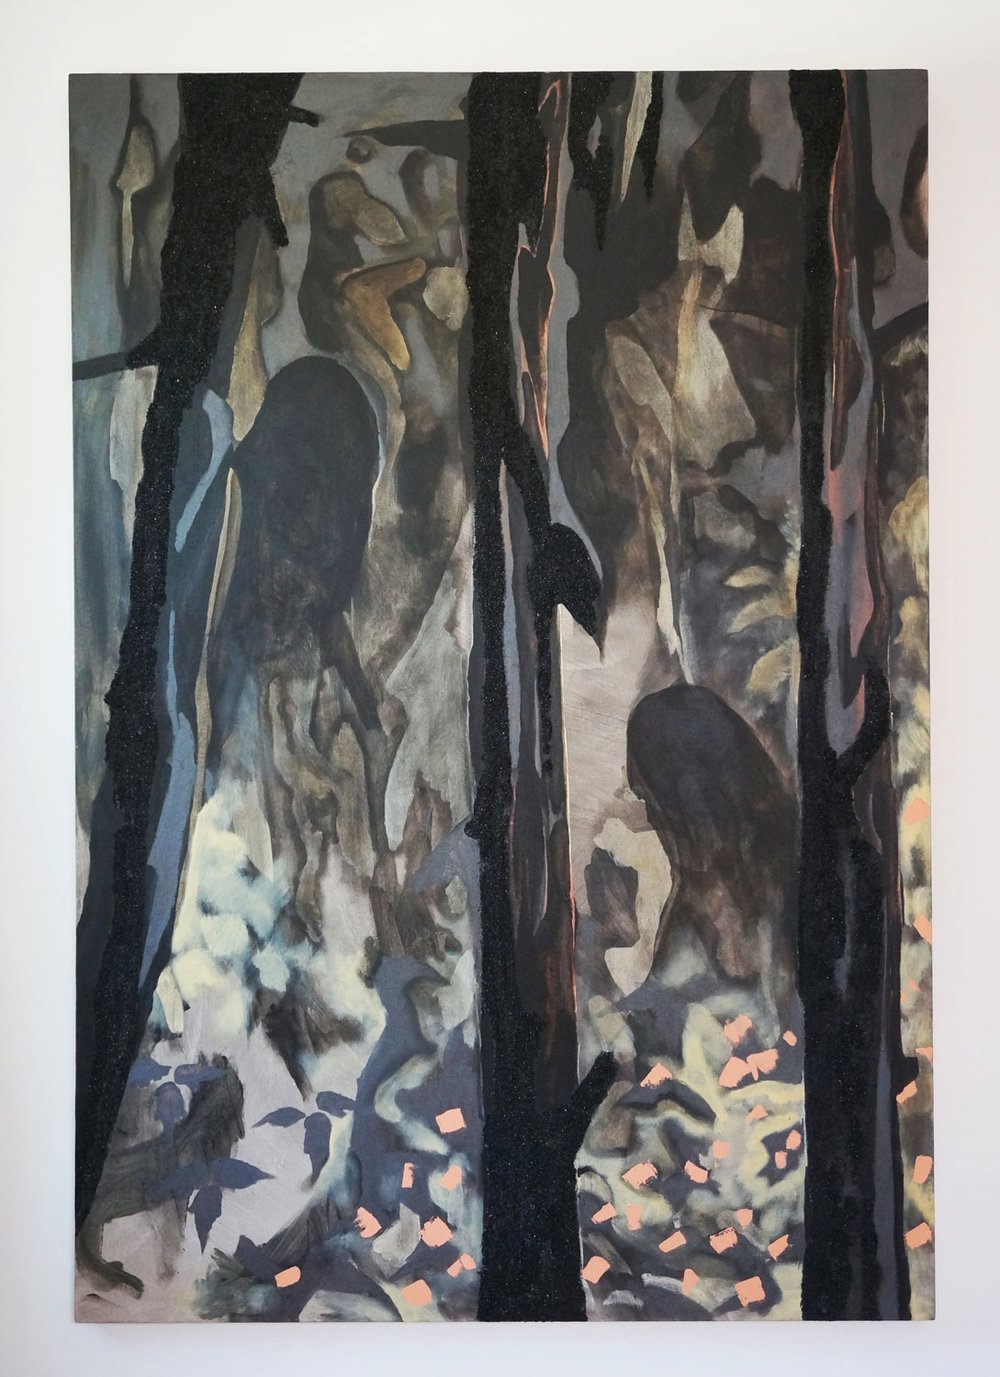 Nomads, 2017, acrylic, coal on canvas, 64in x 44in